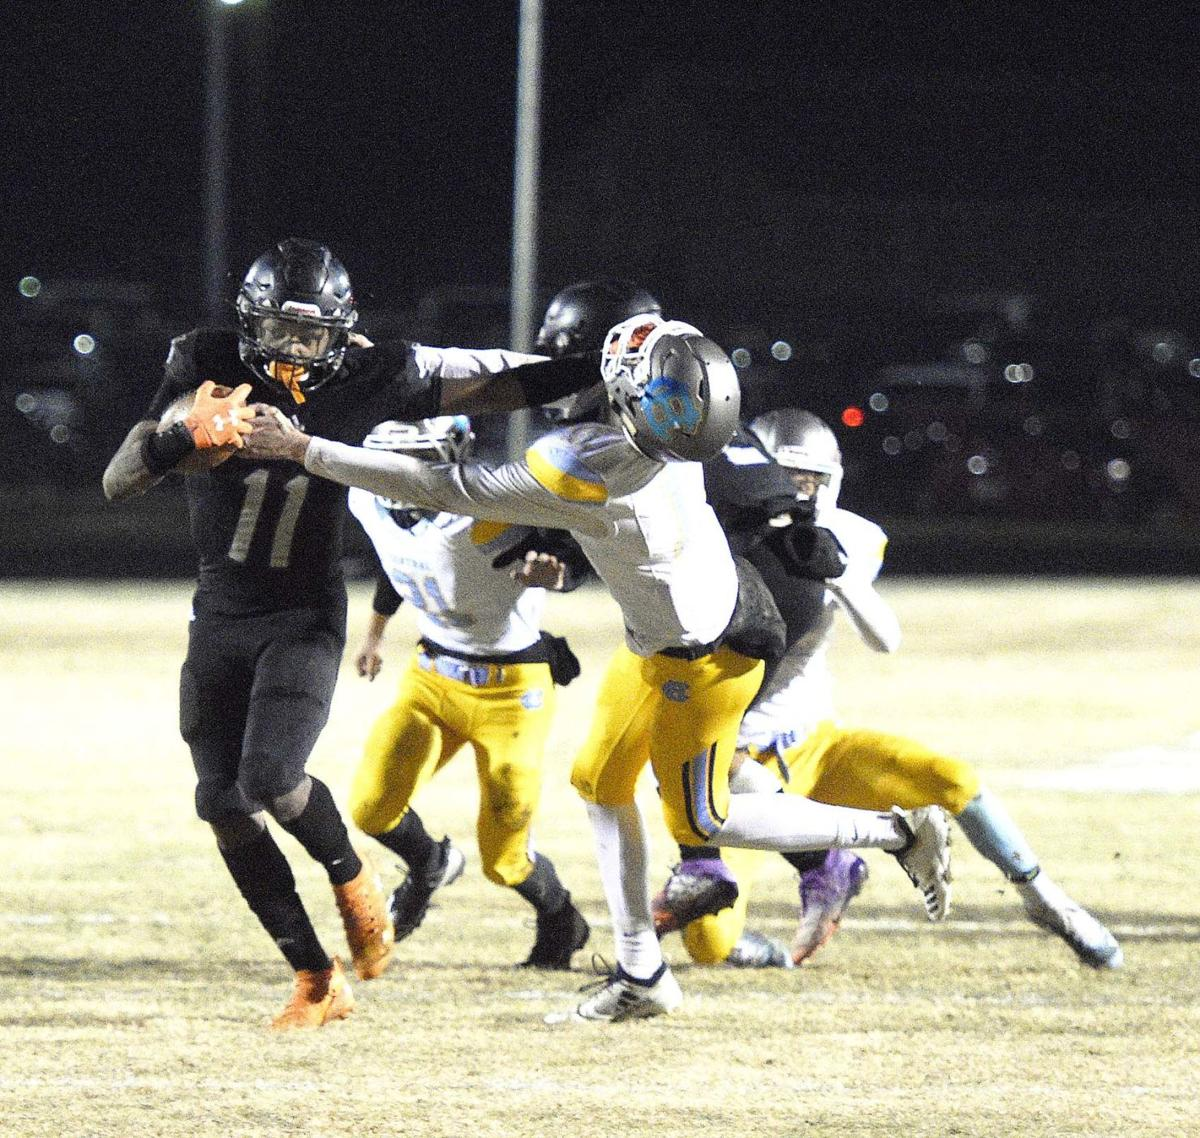 PREP FOOTBALL 6-A PLAYOFFS: North Hardin remains undefeated behind Wright's 202 yards in victory over Central Hardin